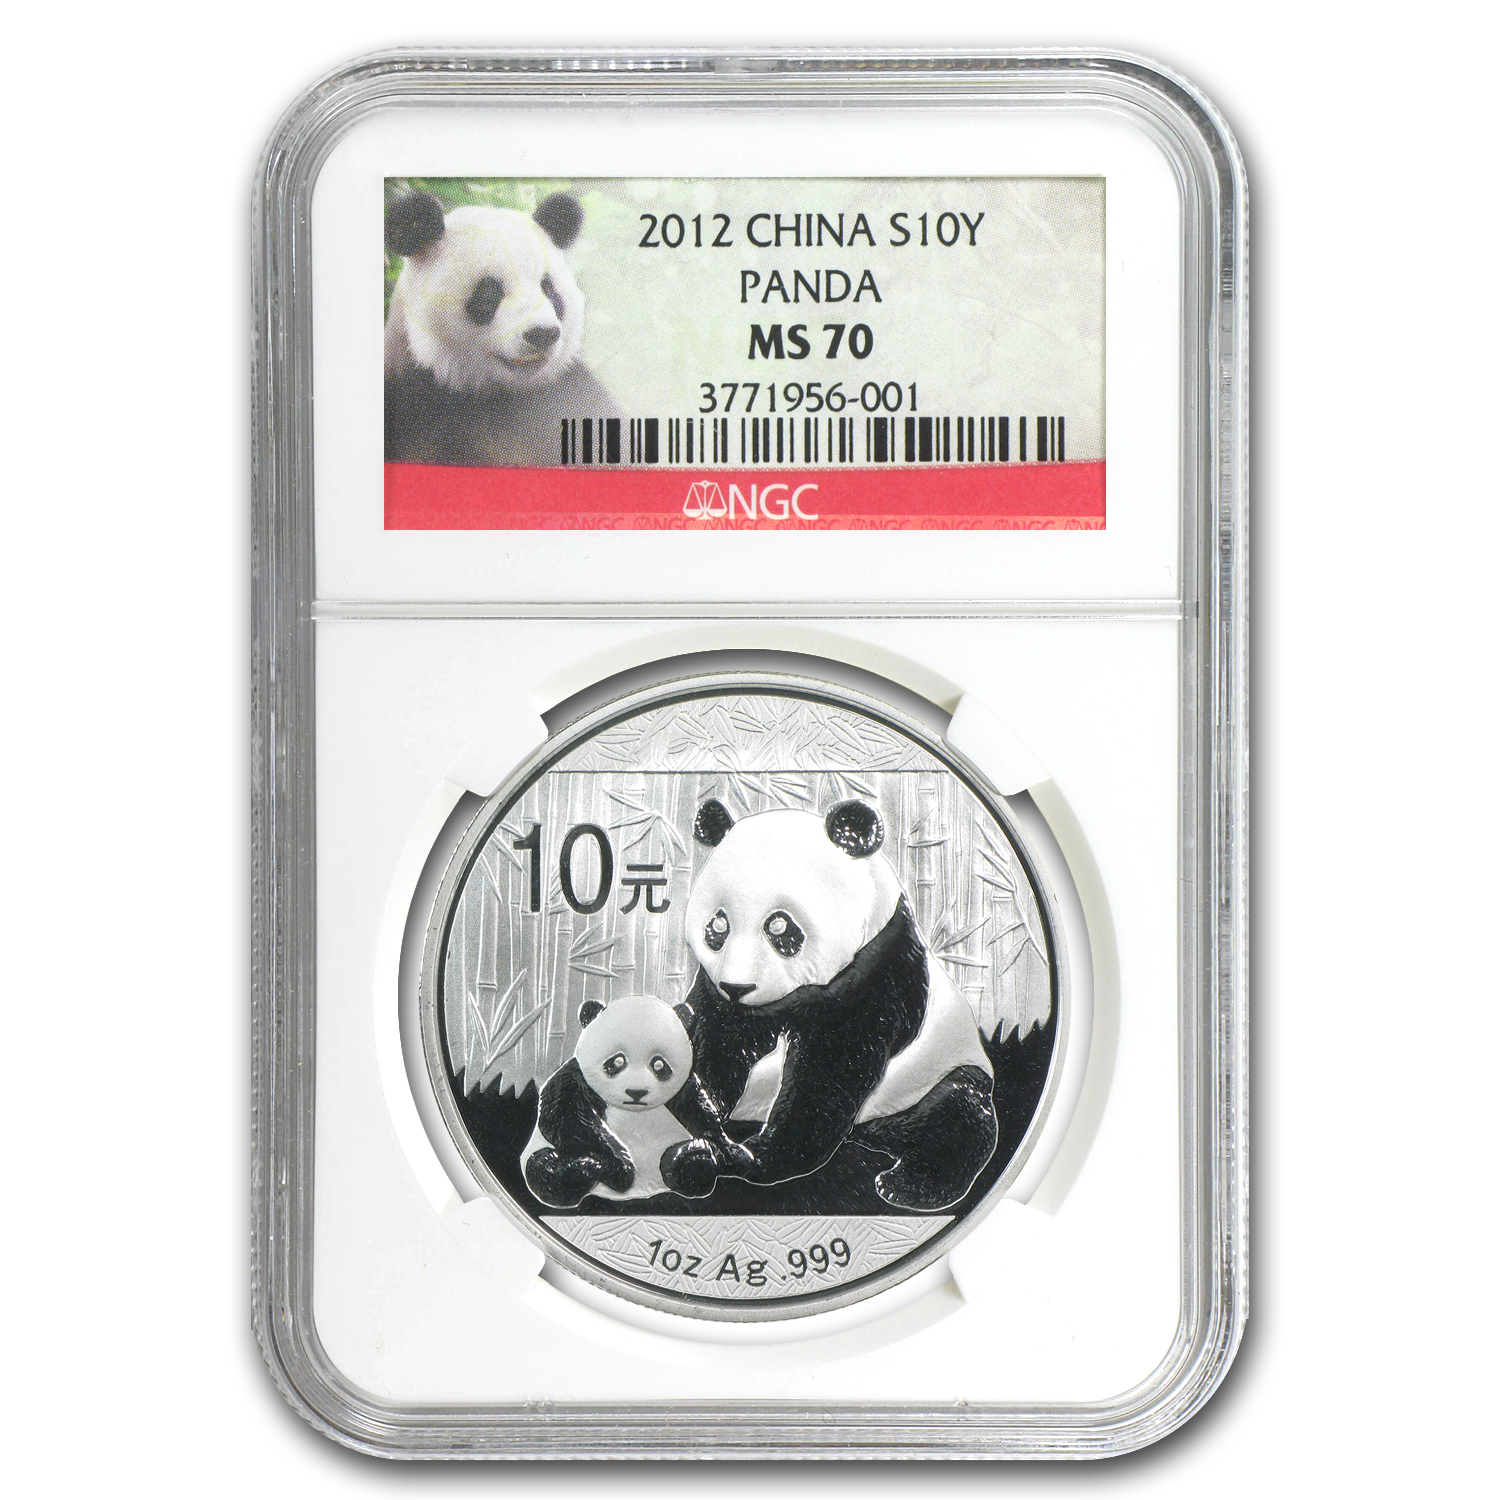 2012 China 1 oz Silver Panda MS-70 NGC